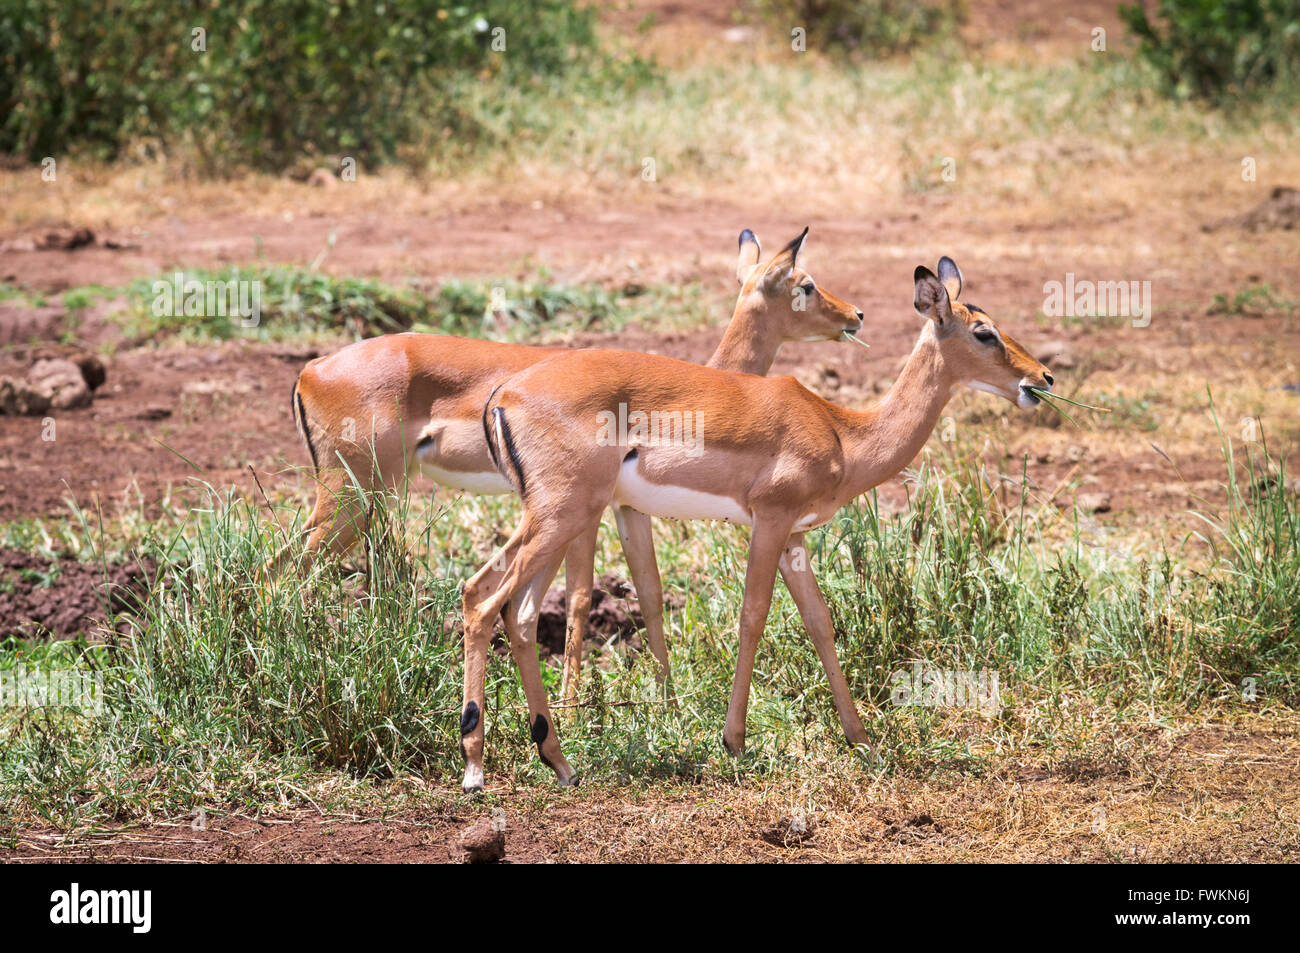 Two female Impala (Aepyceros melampus) grazing in Lake Manyara National Park, Tanzania, Africa - Stock Image